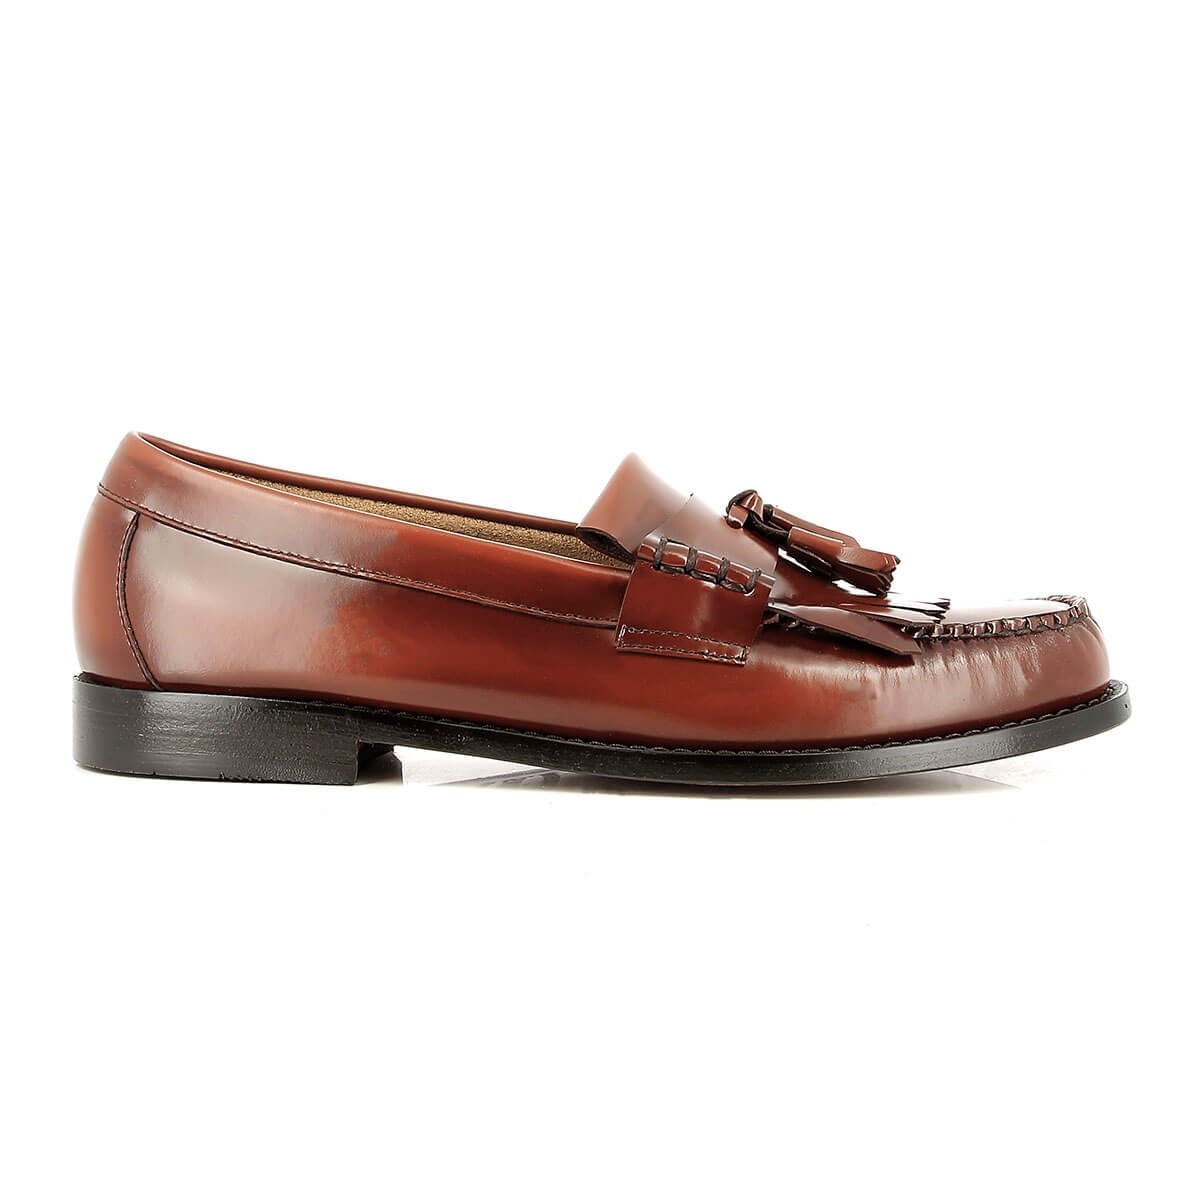 G.H. Bass & Co. Weejuns Layton Kiltie Moc II Mid Brown Leather